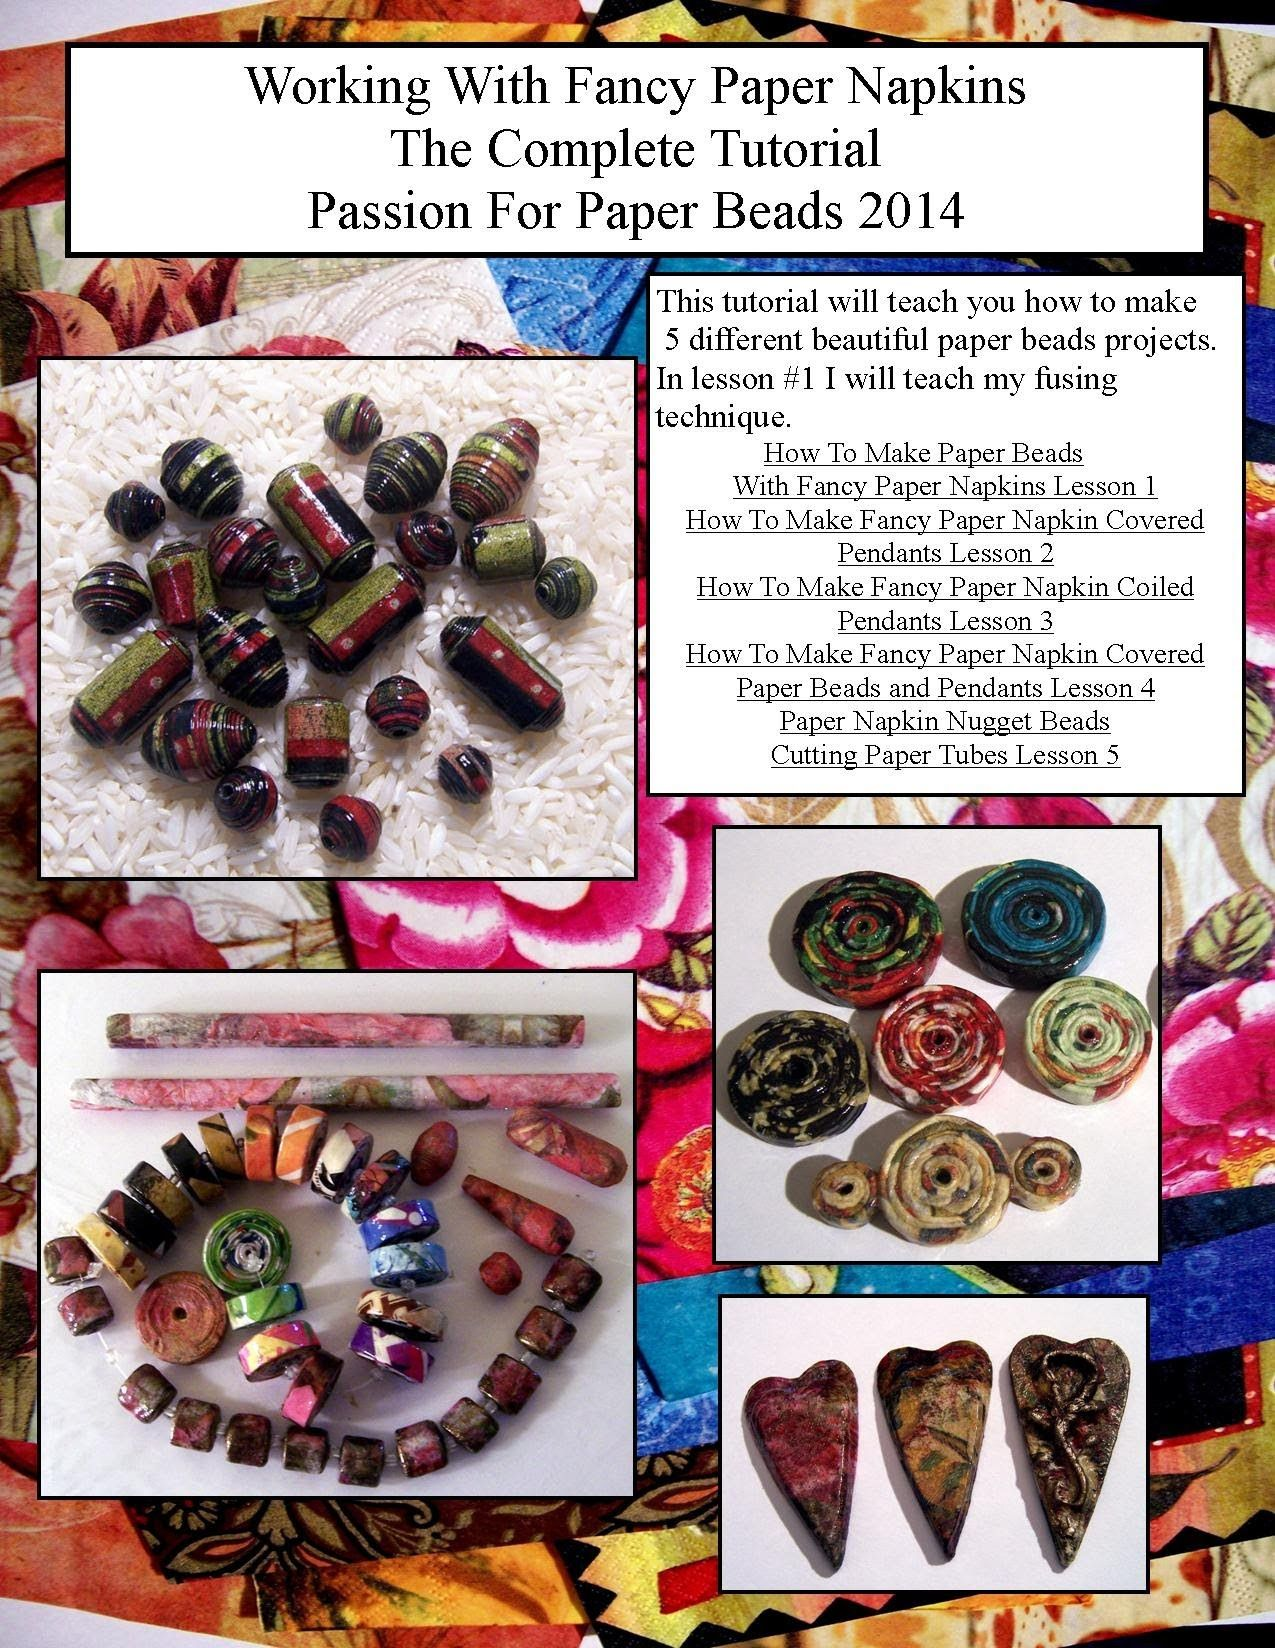 How To Make Paper Beads With Fancy Paper Napkins Lesson 1 #papernapkins